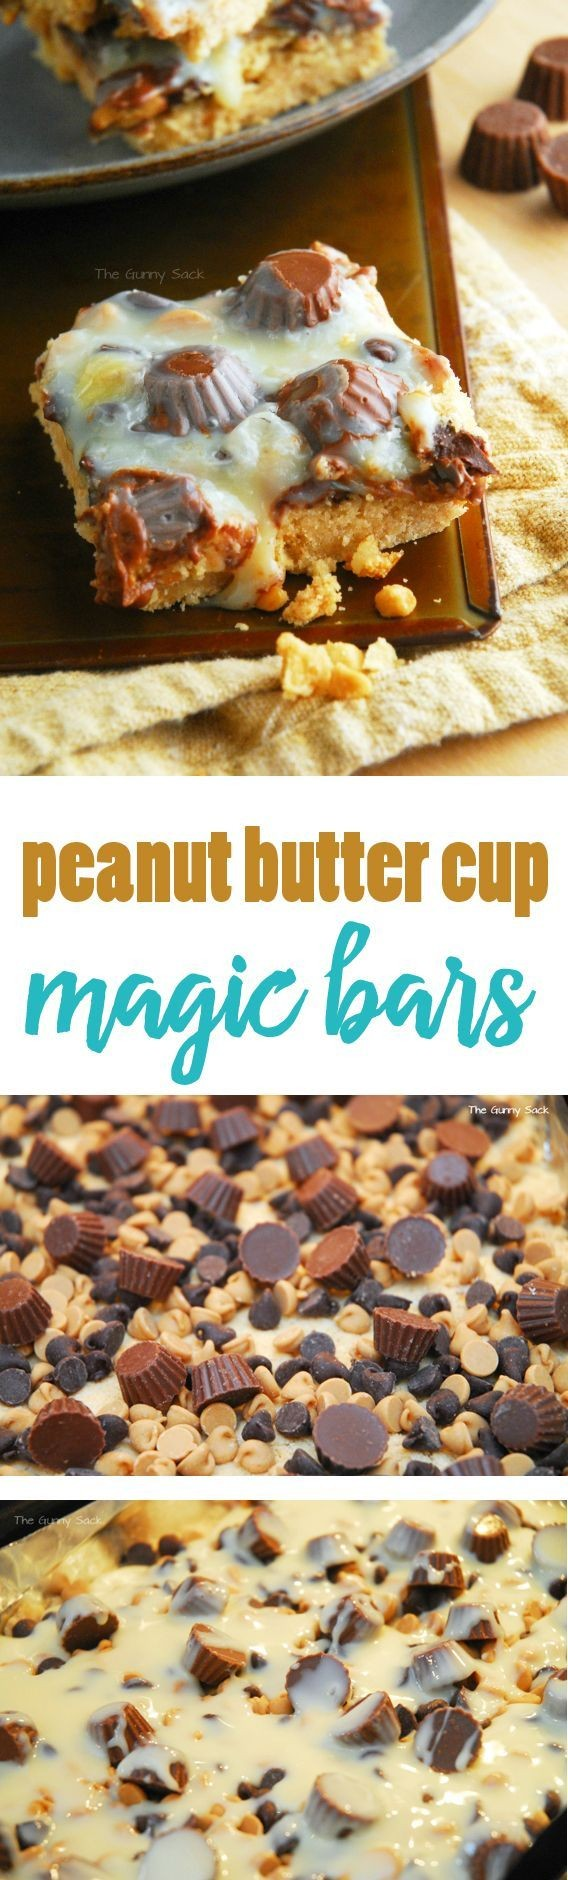 Peanut Butter Cup Magic Bars Recipe | Reese'...